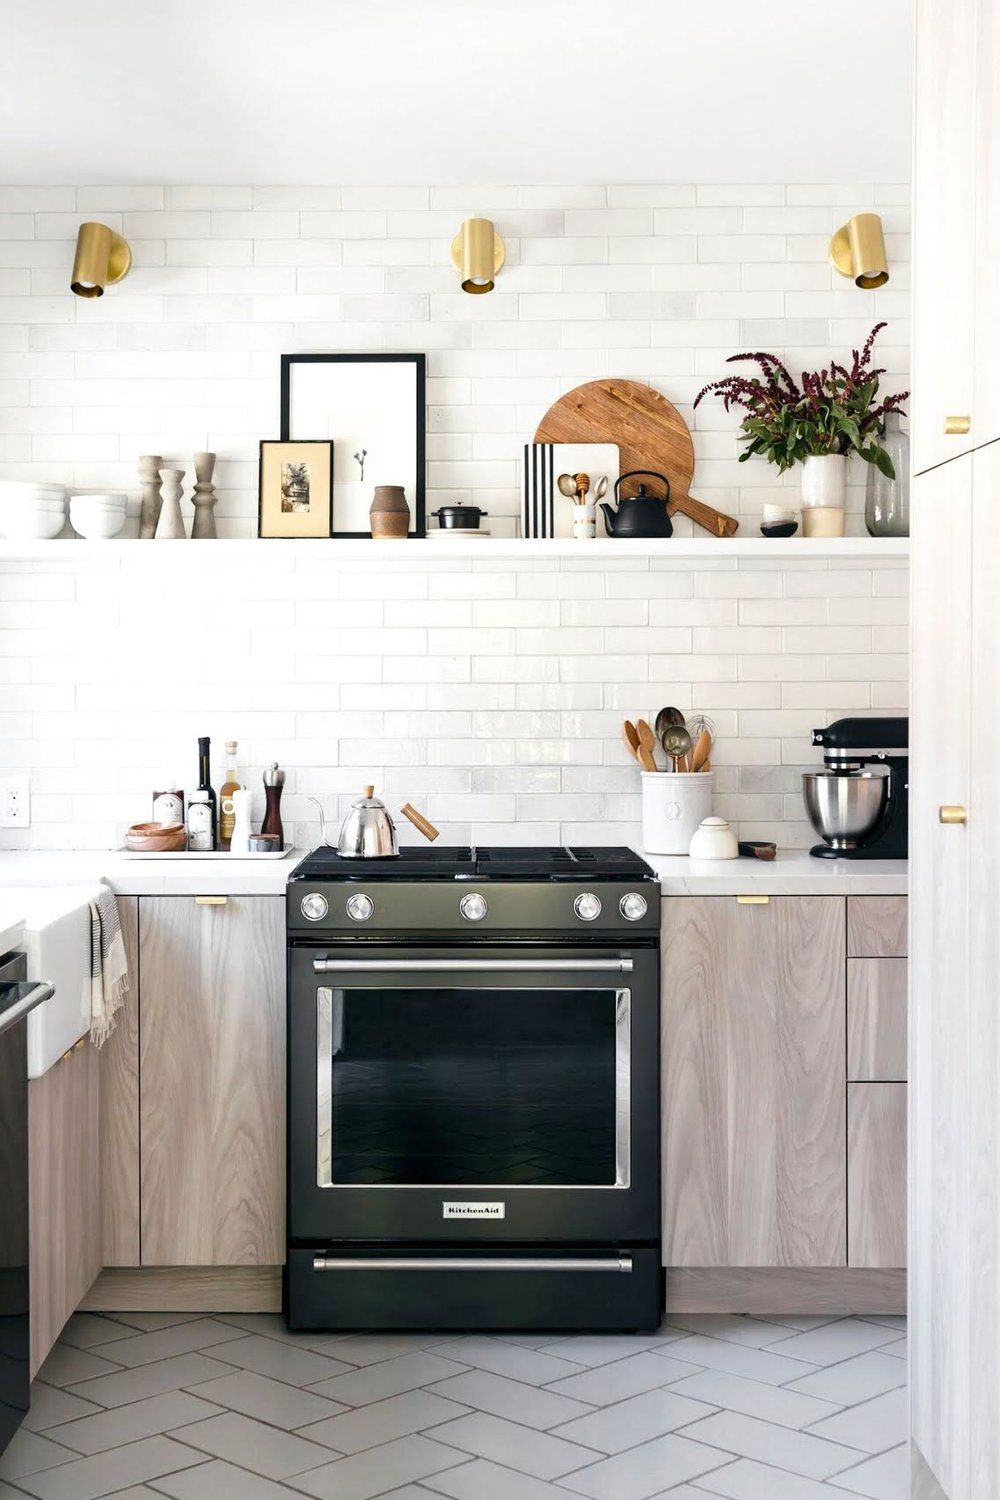 6 Tips For Small Kitchen Design